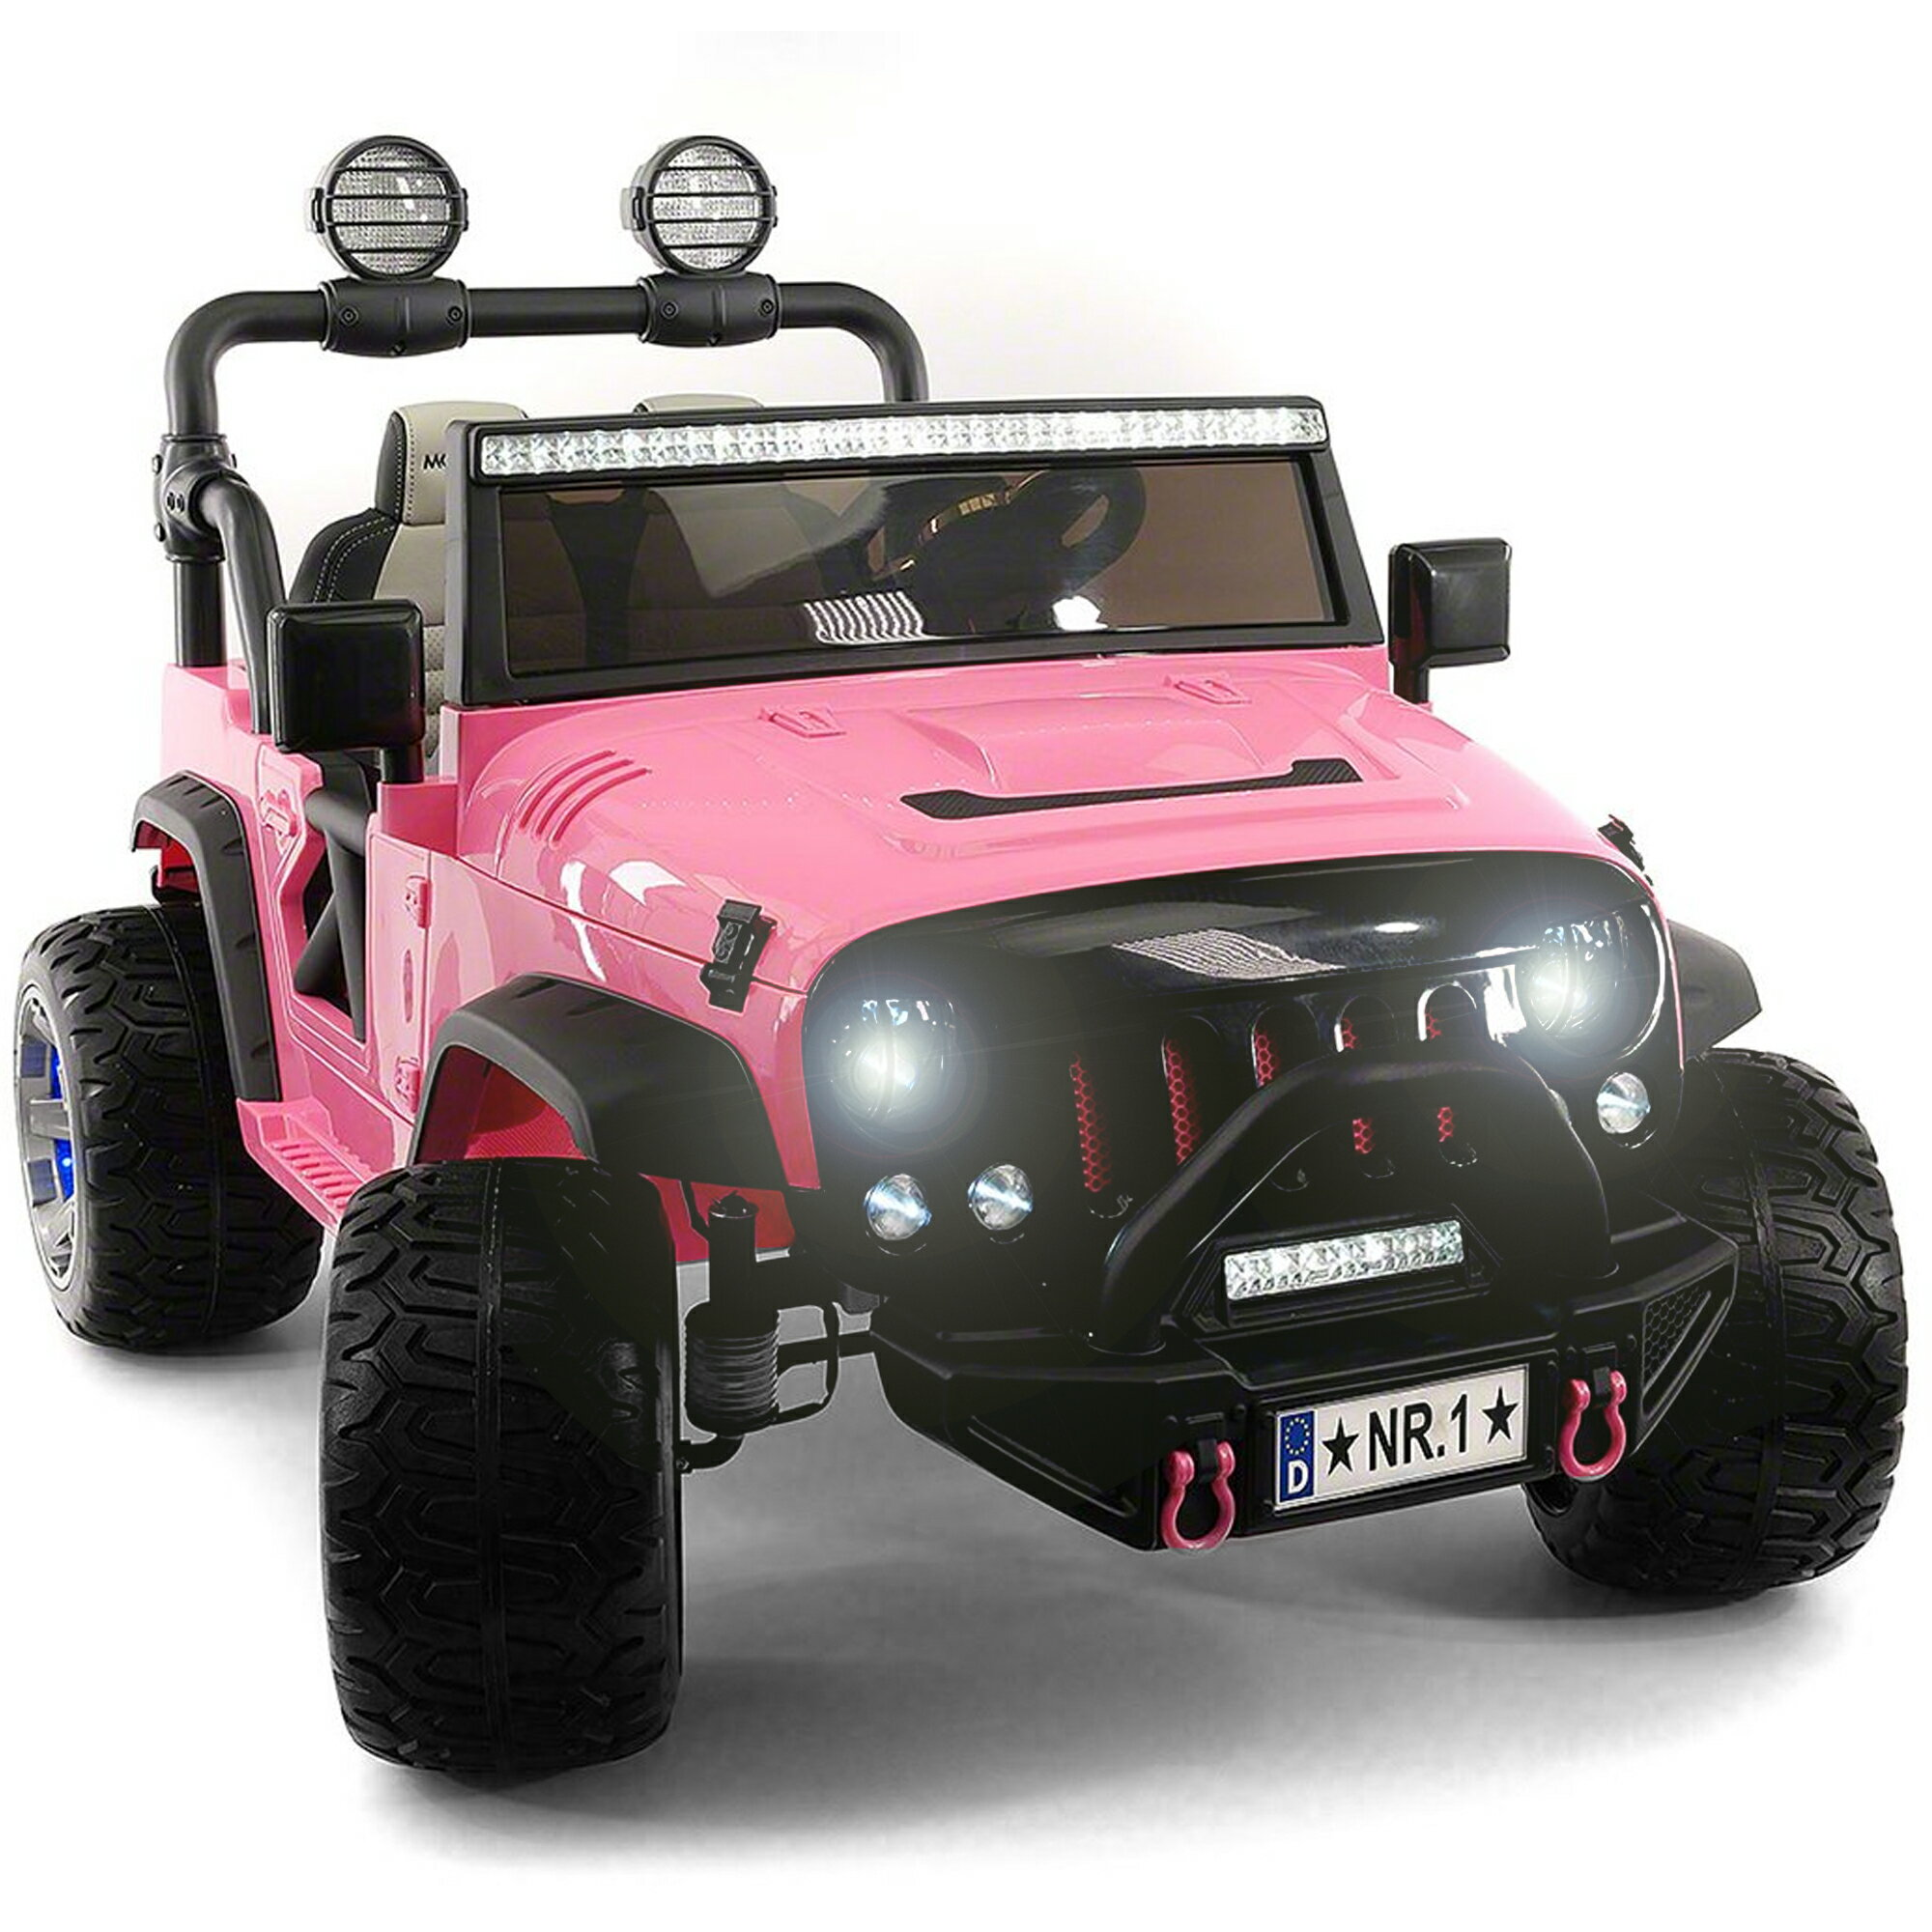 Electric Kids Cars >> 2020 Best Electric Ride On Car Girls Two Seater Truck With Remote Control For Kids Large Capacity 12v Power Battery Licensed Kid Car To Drive With 3